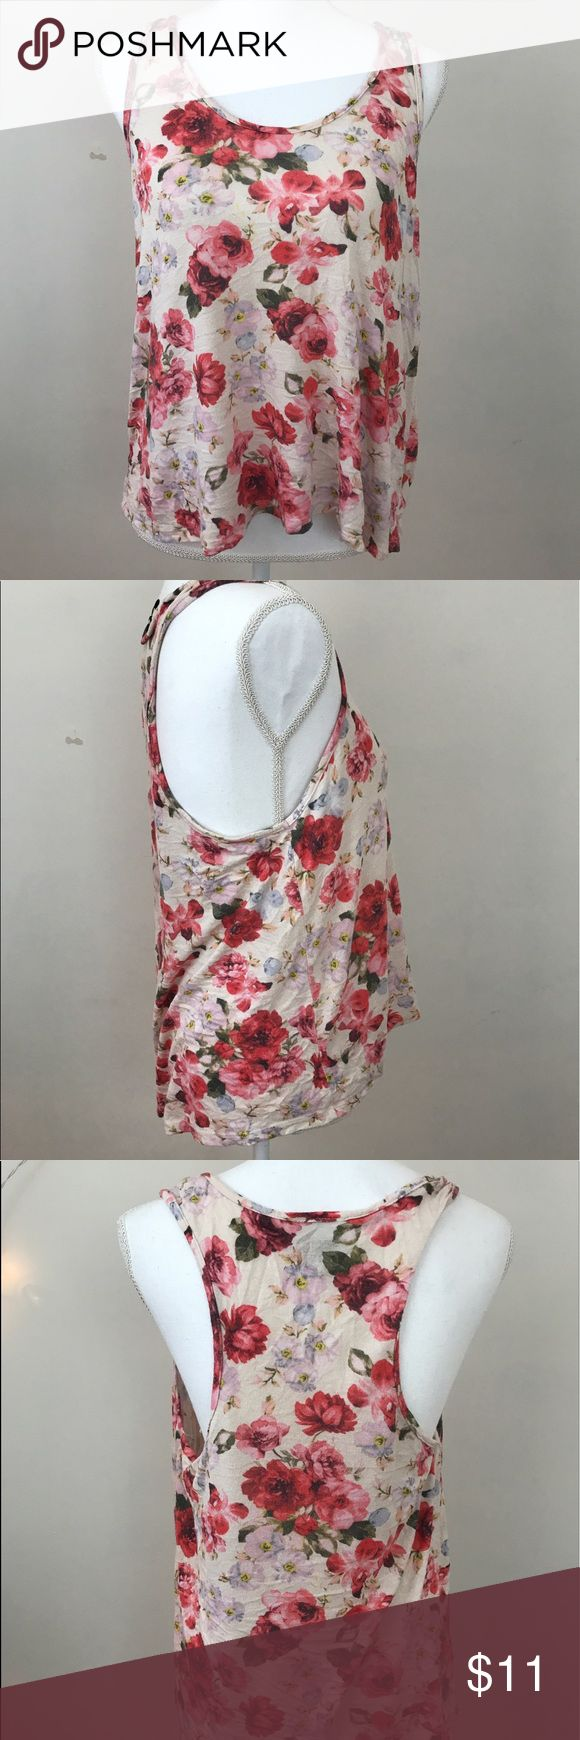 Pink Floral Slouchy Tank from Wet Seal Casual floral tank from Wet Seal!  Light pink material with pink and red floral design.  Super soft material.  Size isn't on the tag, fits like a medium but has lots of stretch.  No stains, no tears, no signs of wear.   Take 20% off any bundle of two or more items 💗 Offers are always considered 🌸 Wet Seal Tops Tank Tops